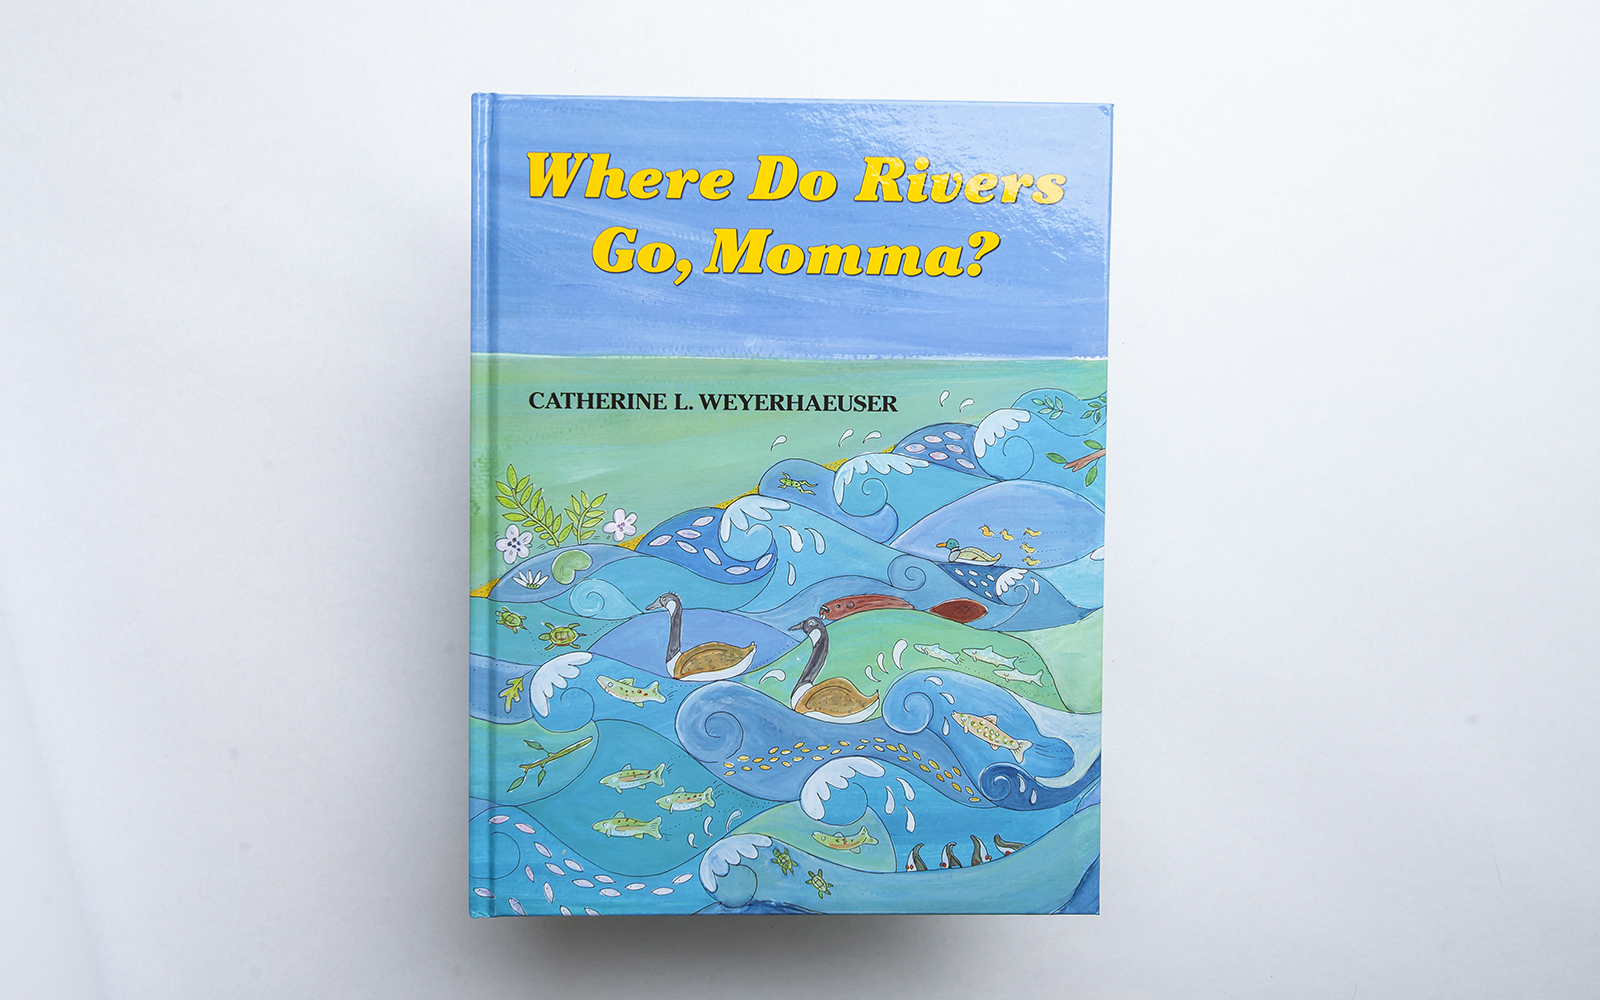 SONWA book Where Do Rivers Go?